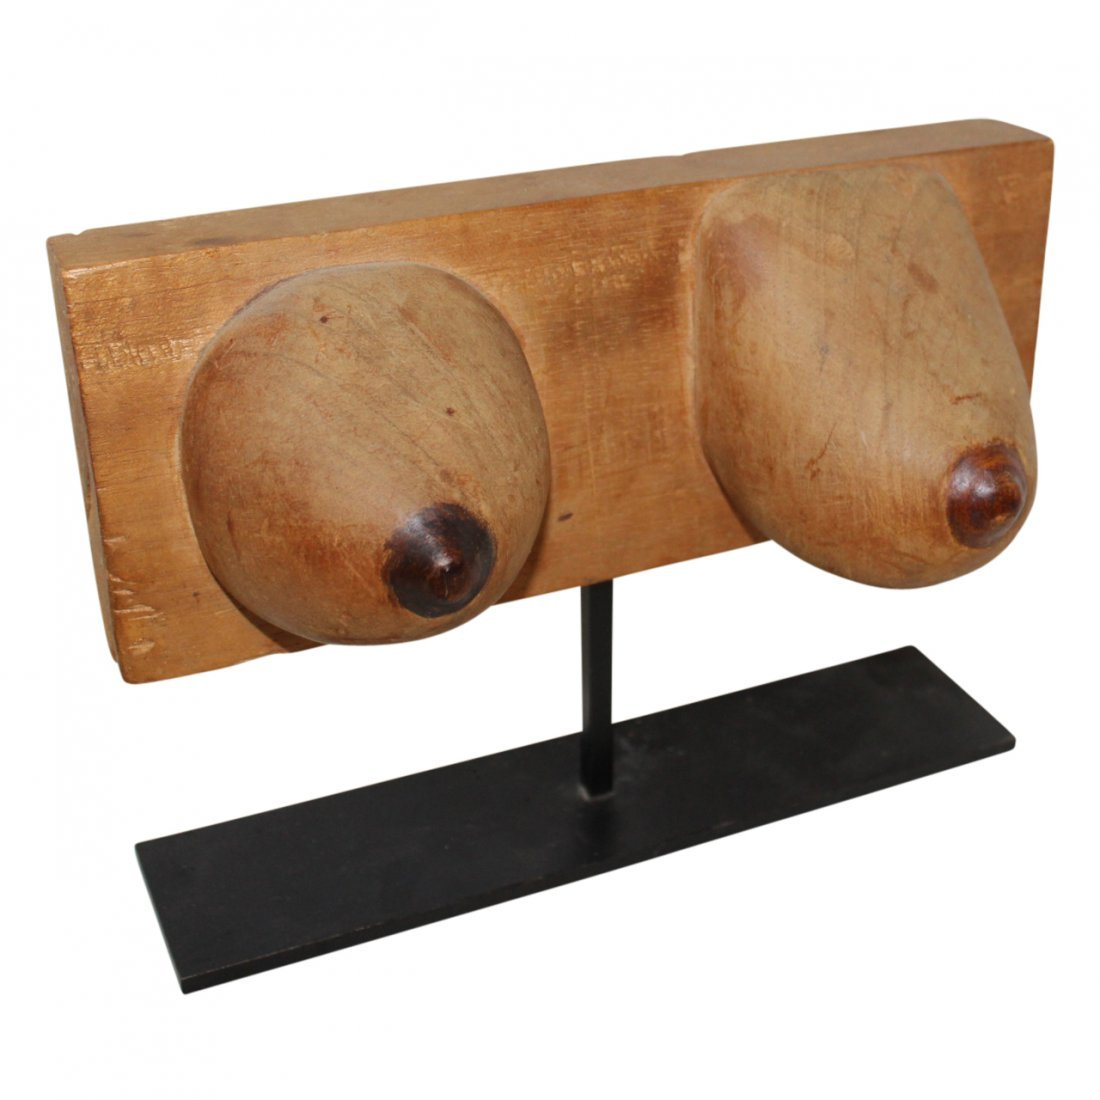 Artist Signed MCM wood sculpture of Breasts on stand